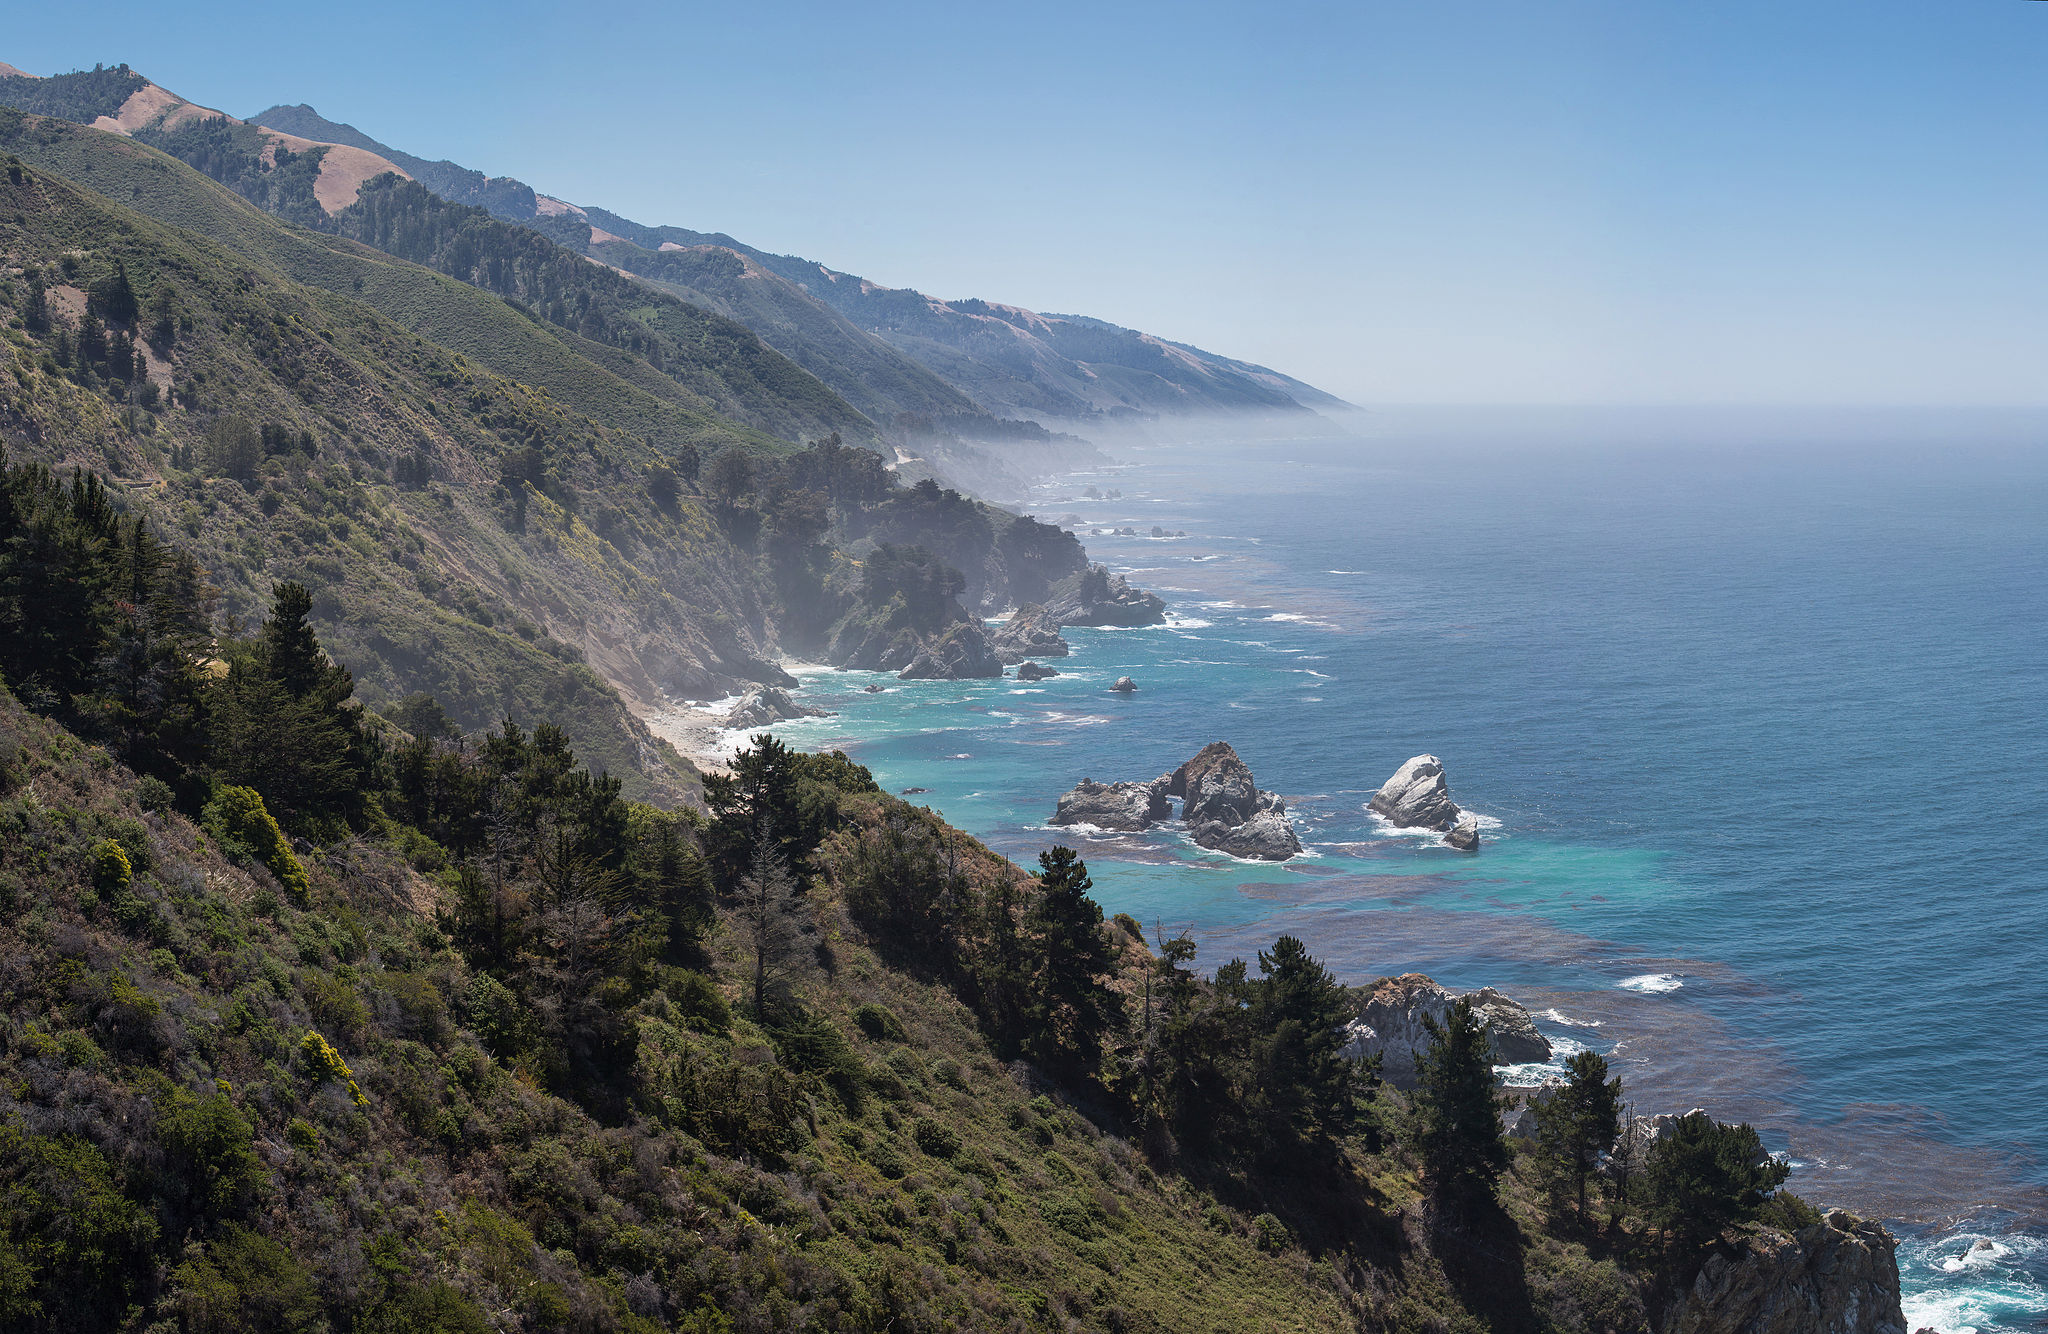 California Dreaming Beauty image of the coast